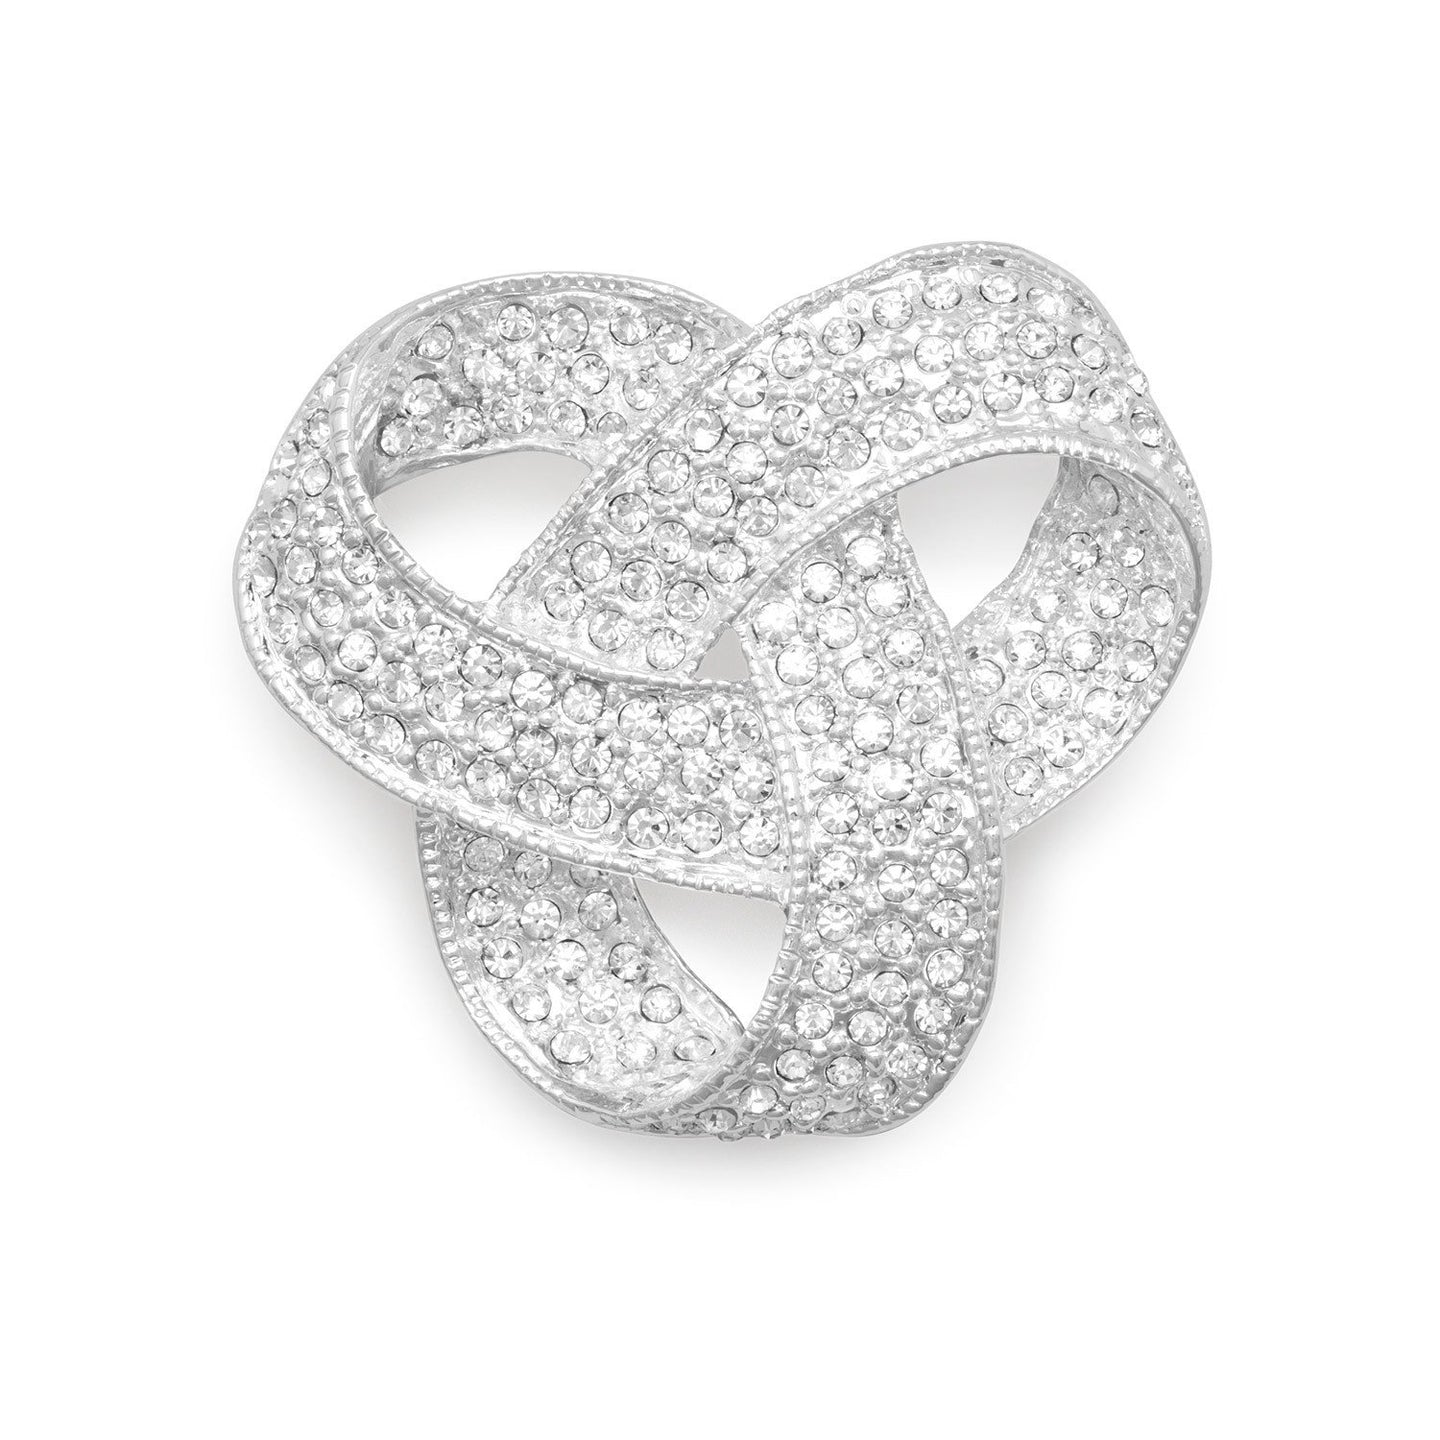 Silver Plated Crystal Love Knot Fashion Pin - the-southern-magnolia-too